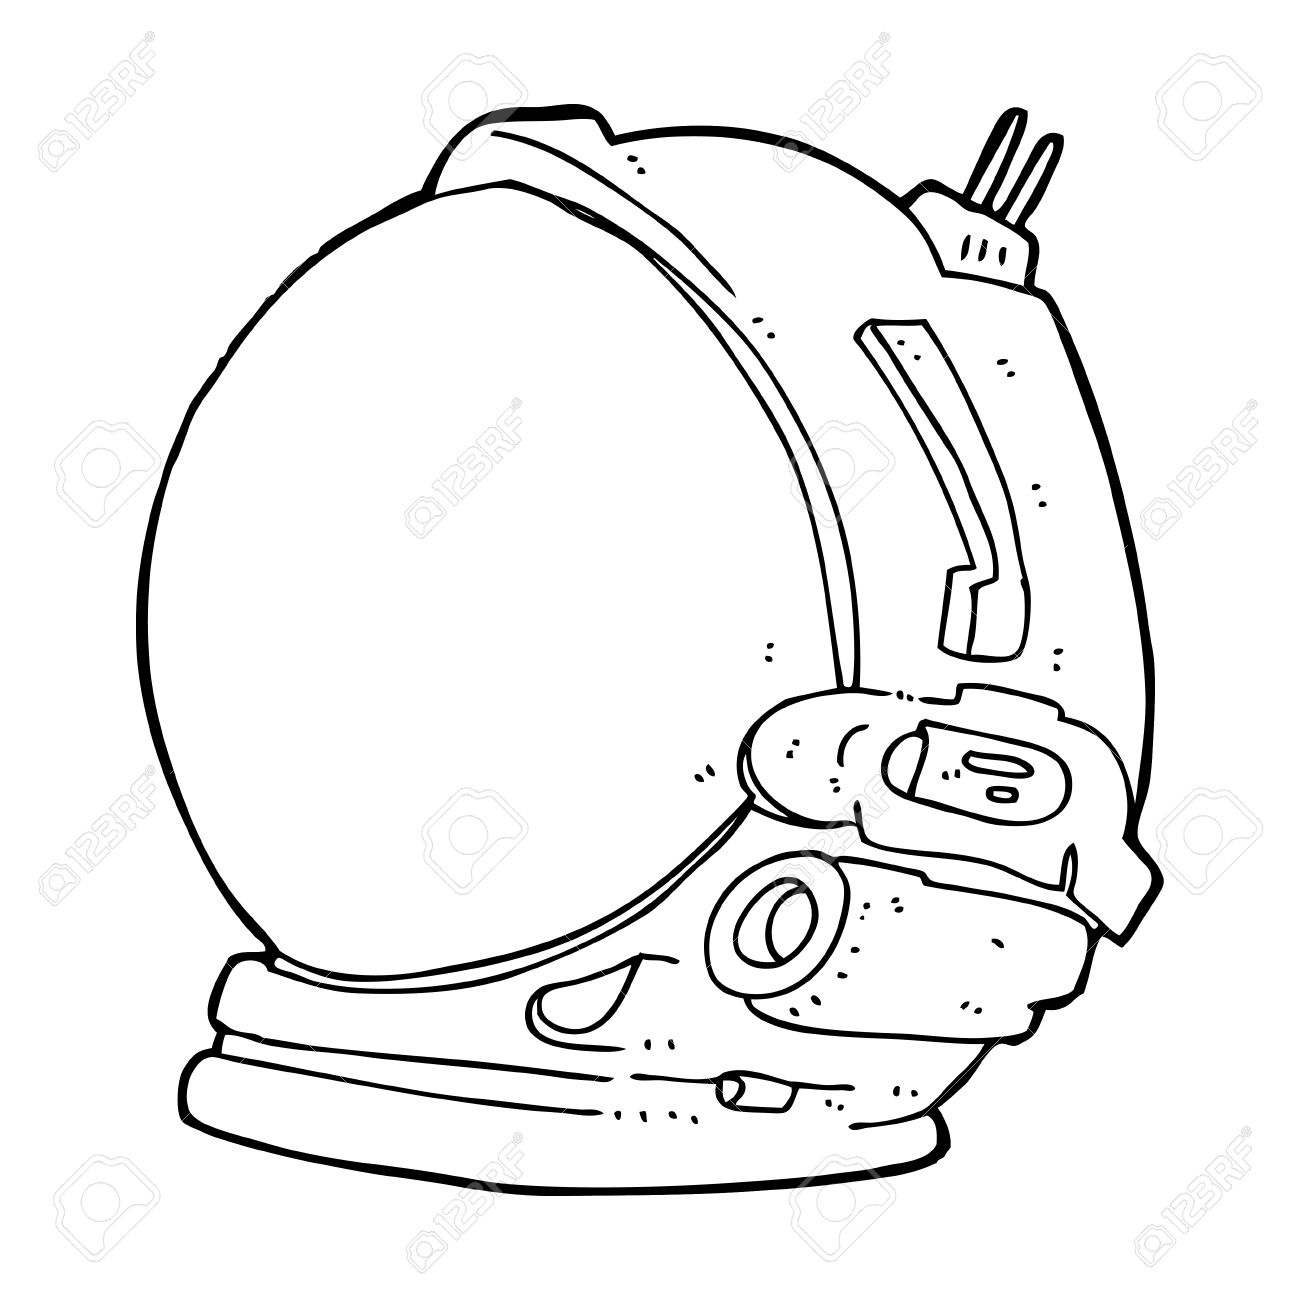 cartoon astronaut helmet.